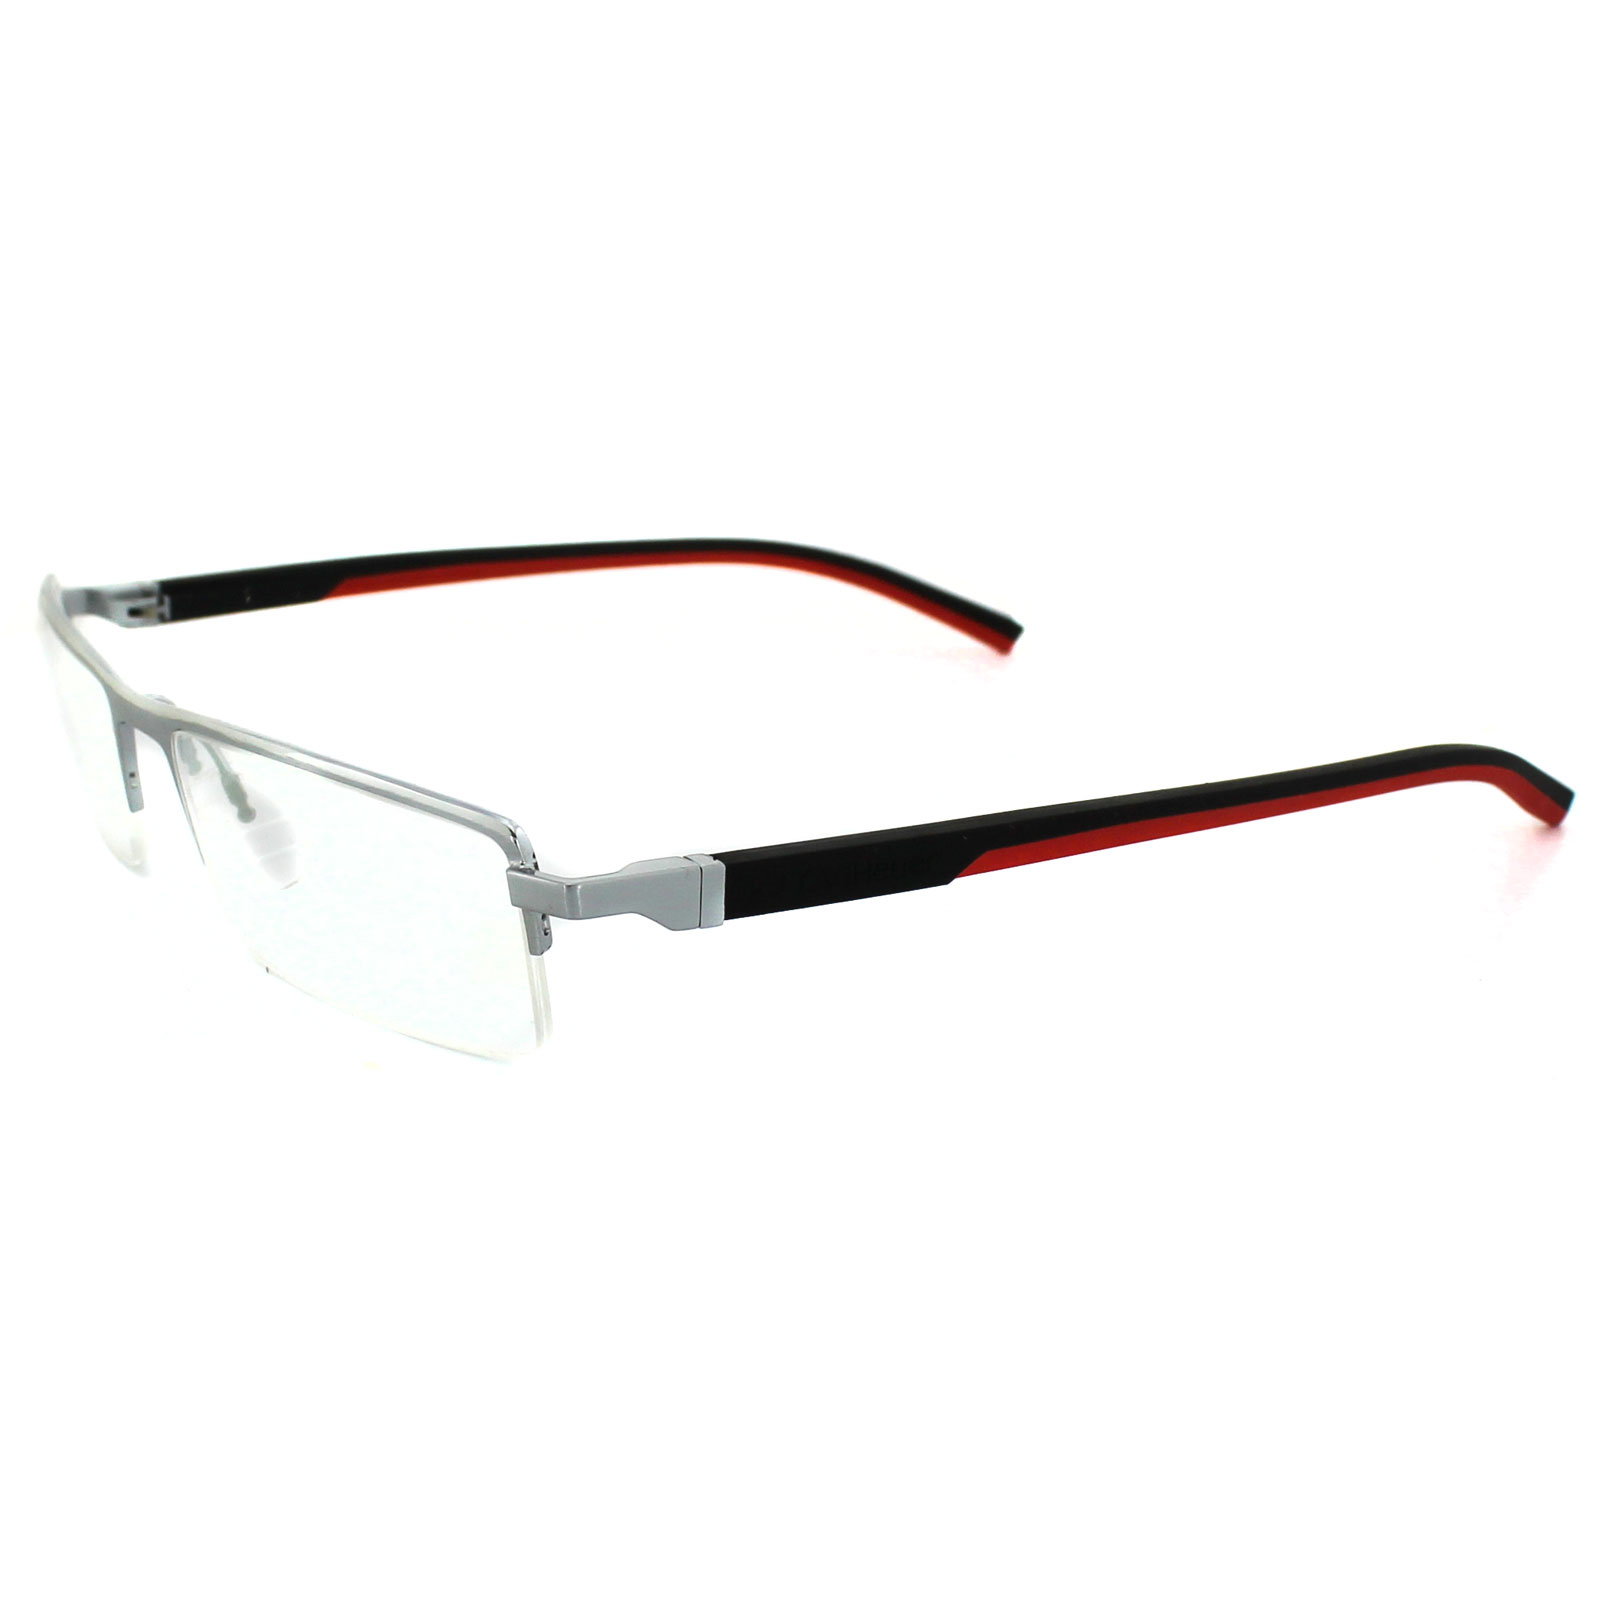 Tag Heuer Glasses Automatic 0822 002 Pure Frame Black & Red Temples ...